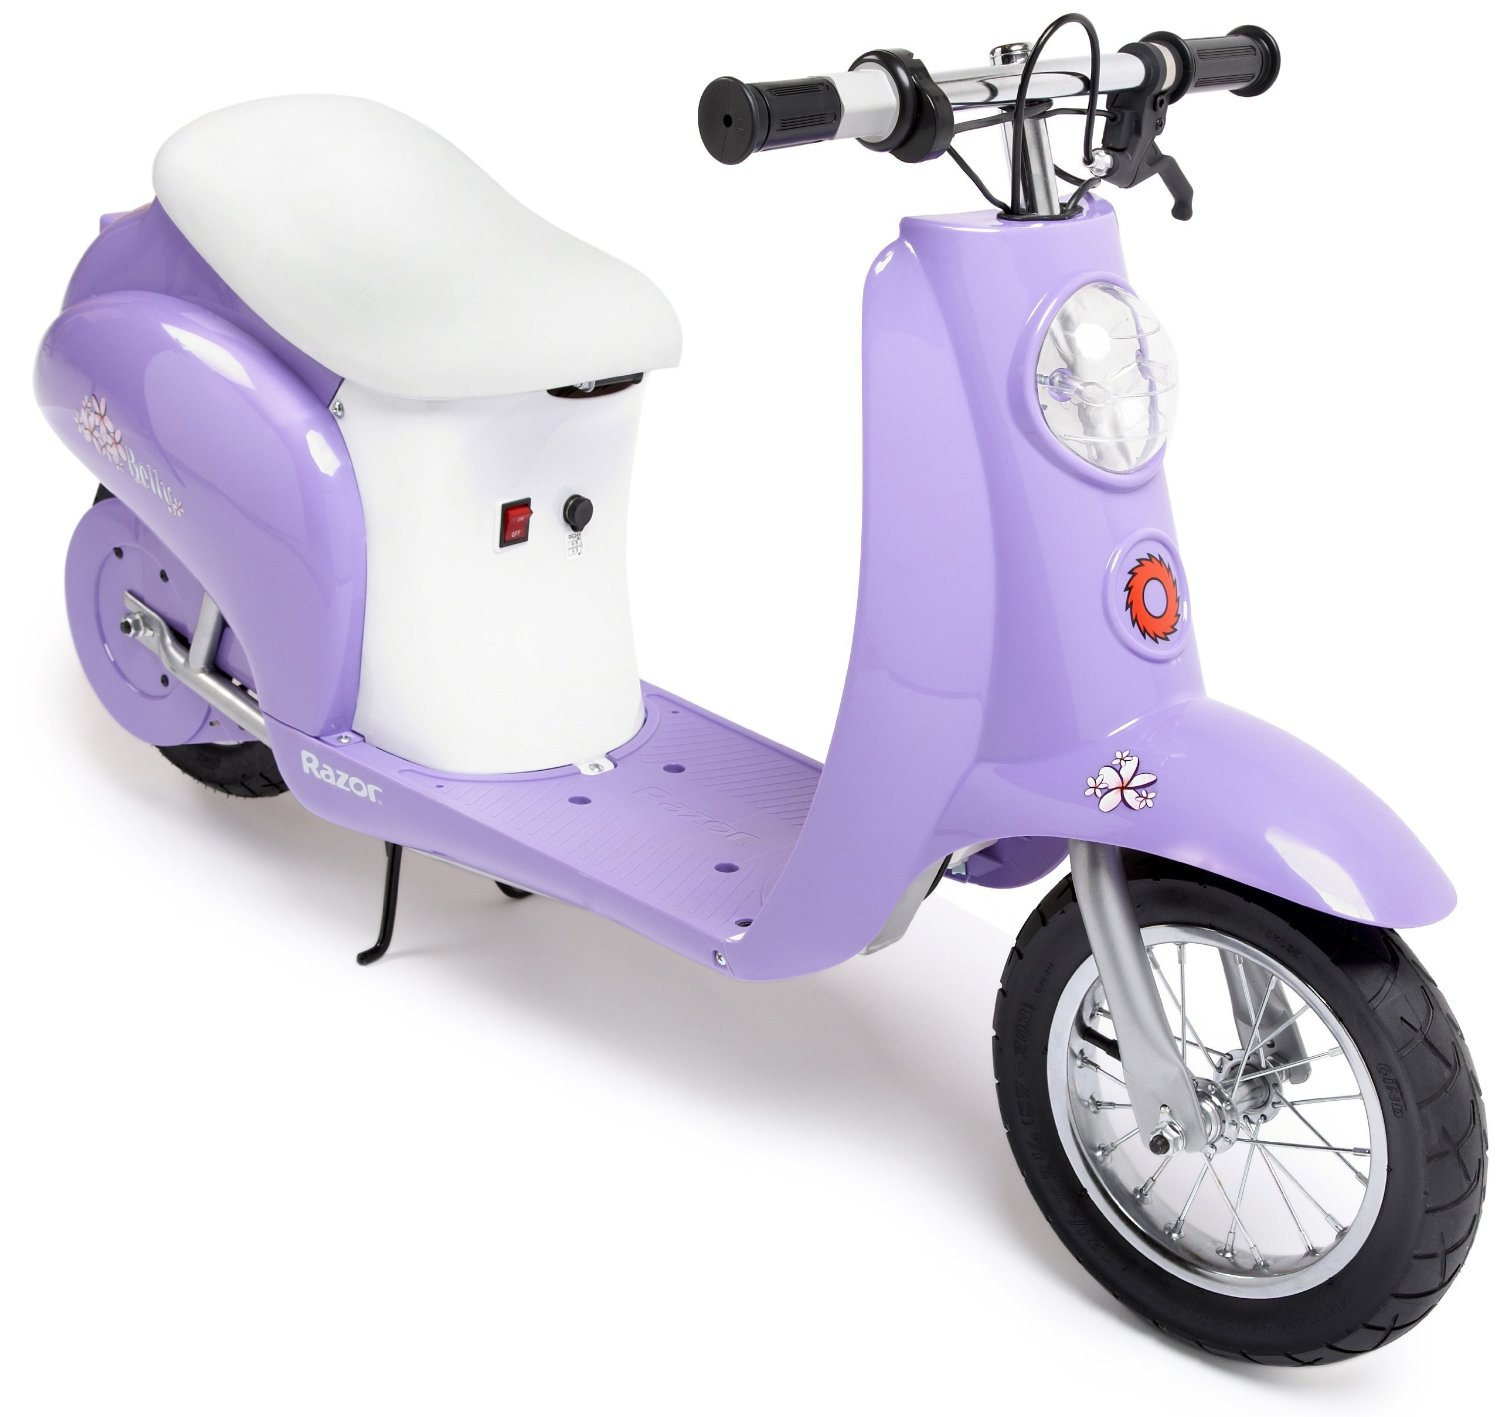 Top 10 Best Electric Motor Scooter Bicycles Bikes 2017